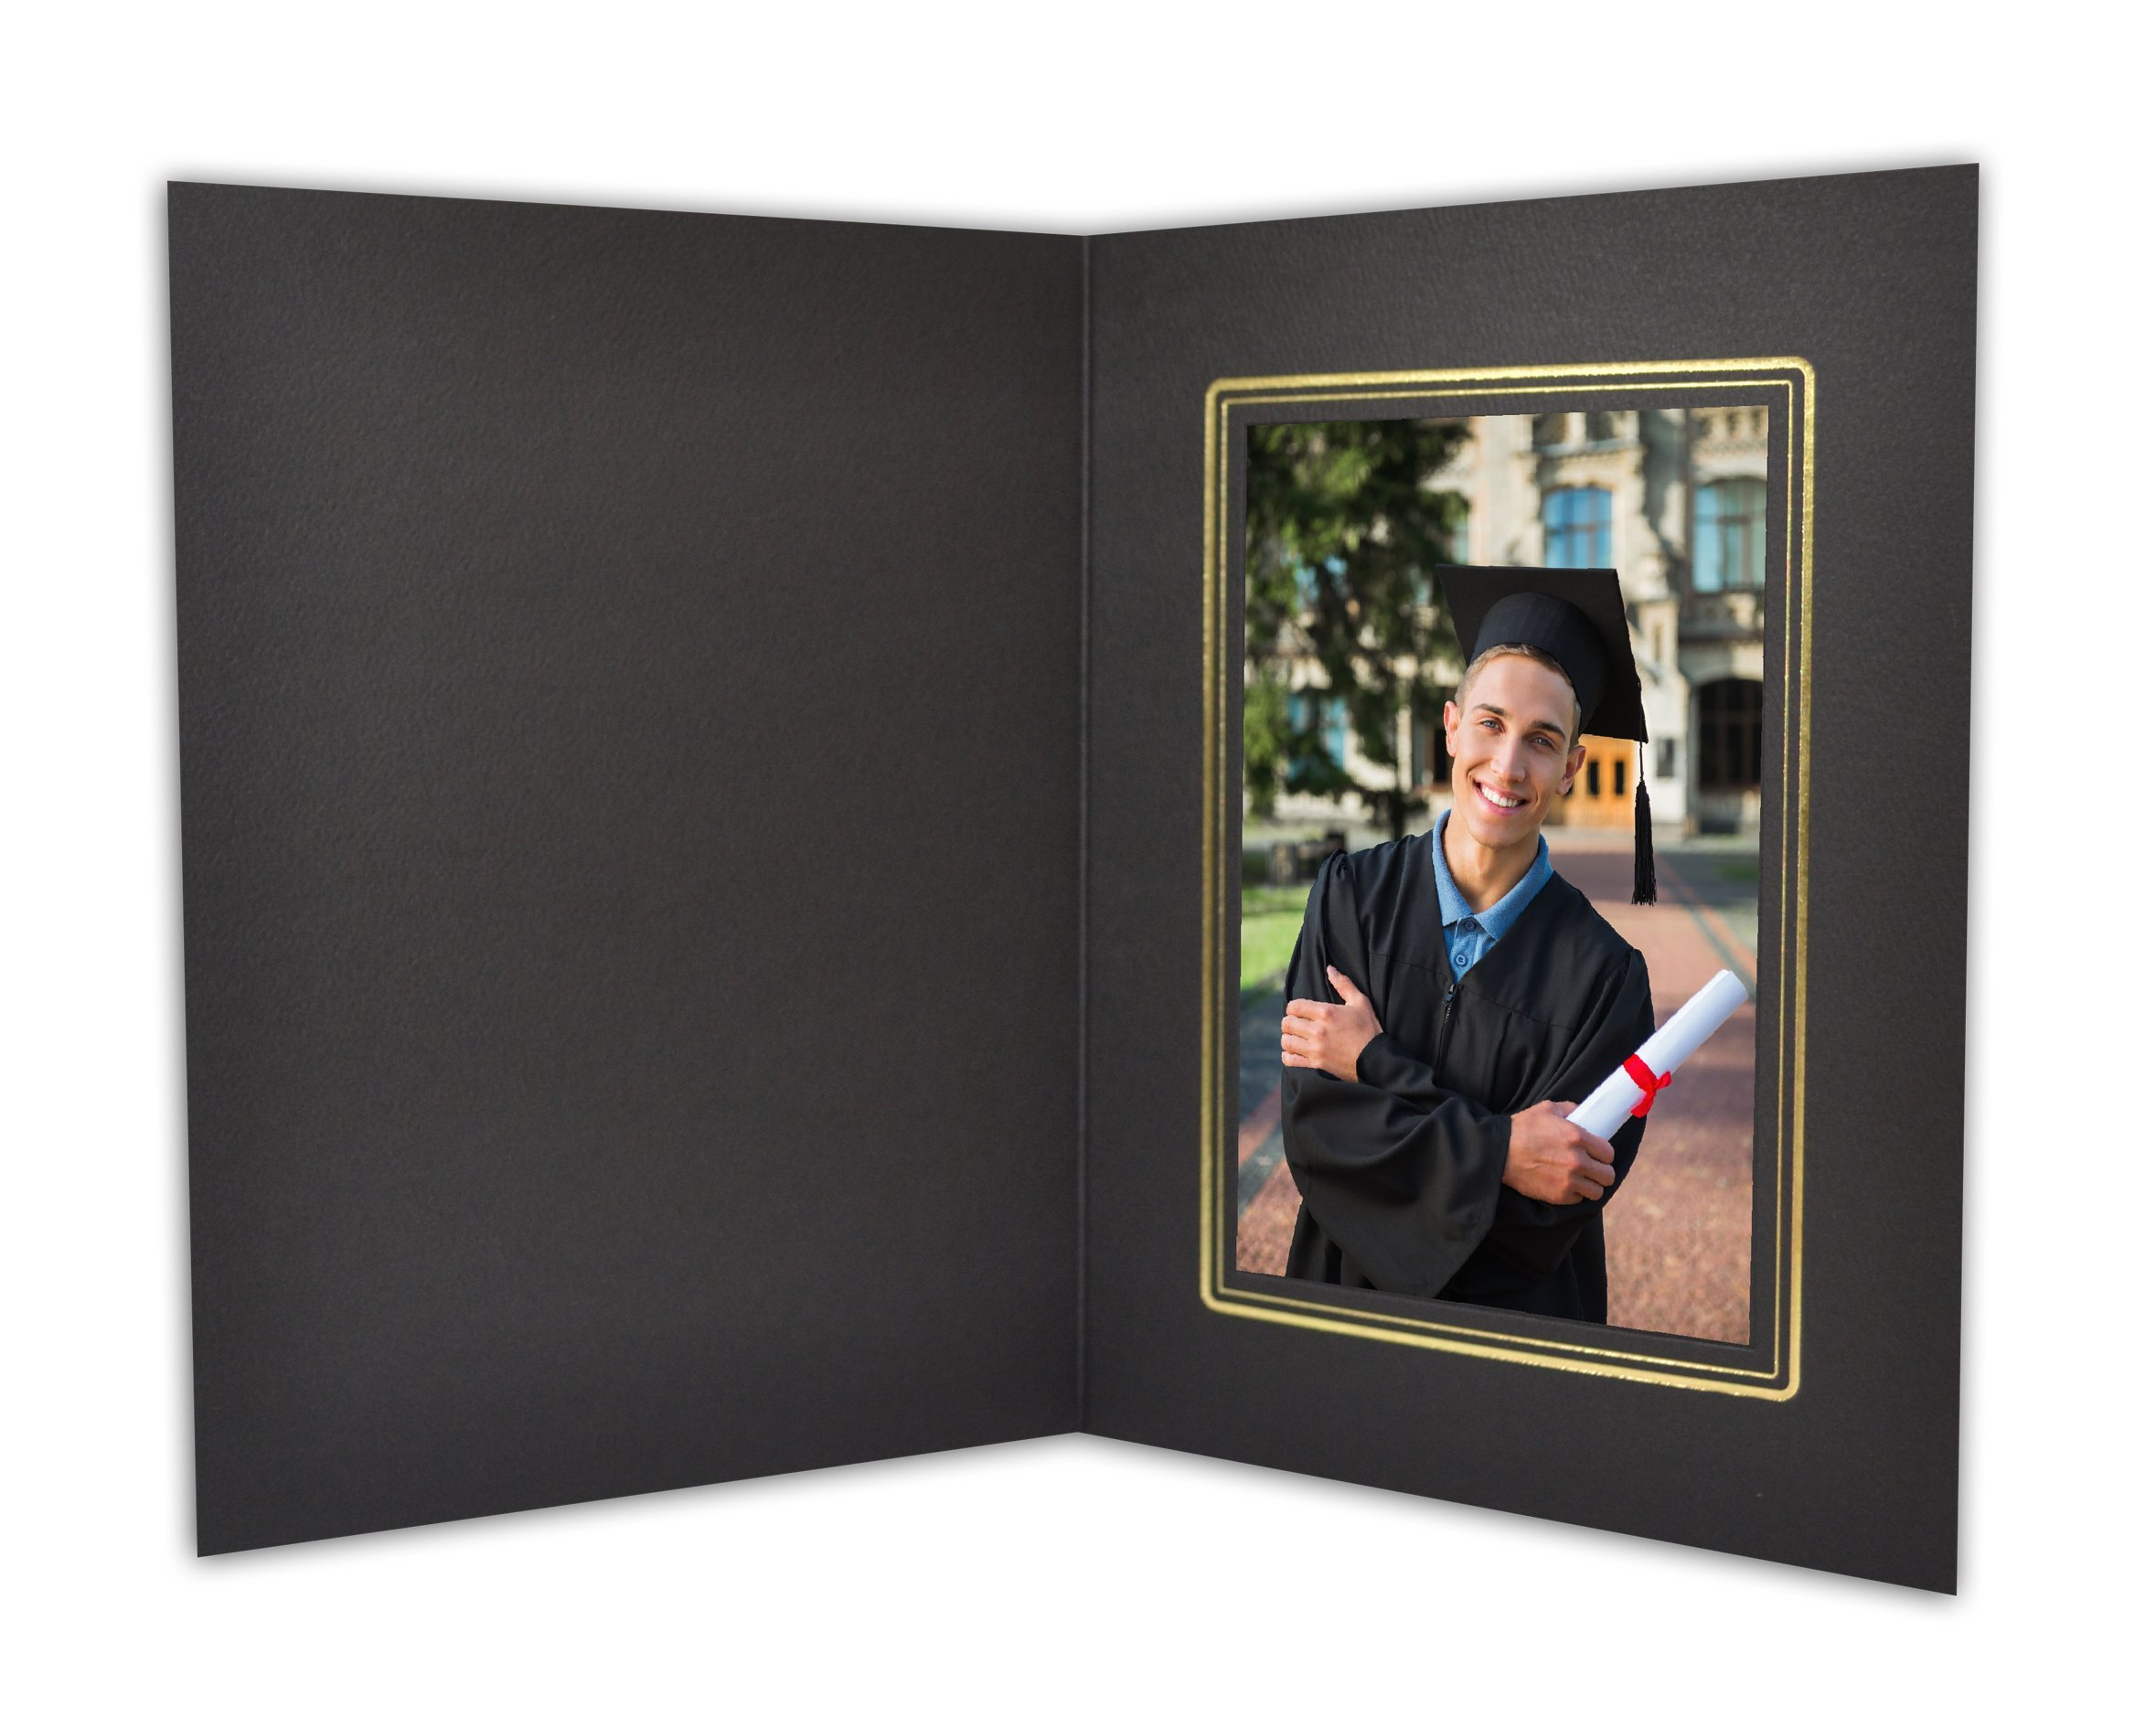 Golden State Art, Cardboard Photo Folder For a 4x6 Photo (Pack of 100) GS001-S Black Color by Golden State Art